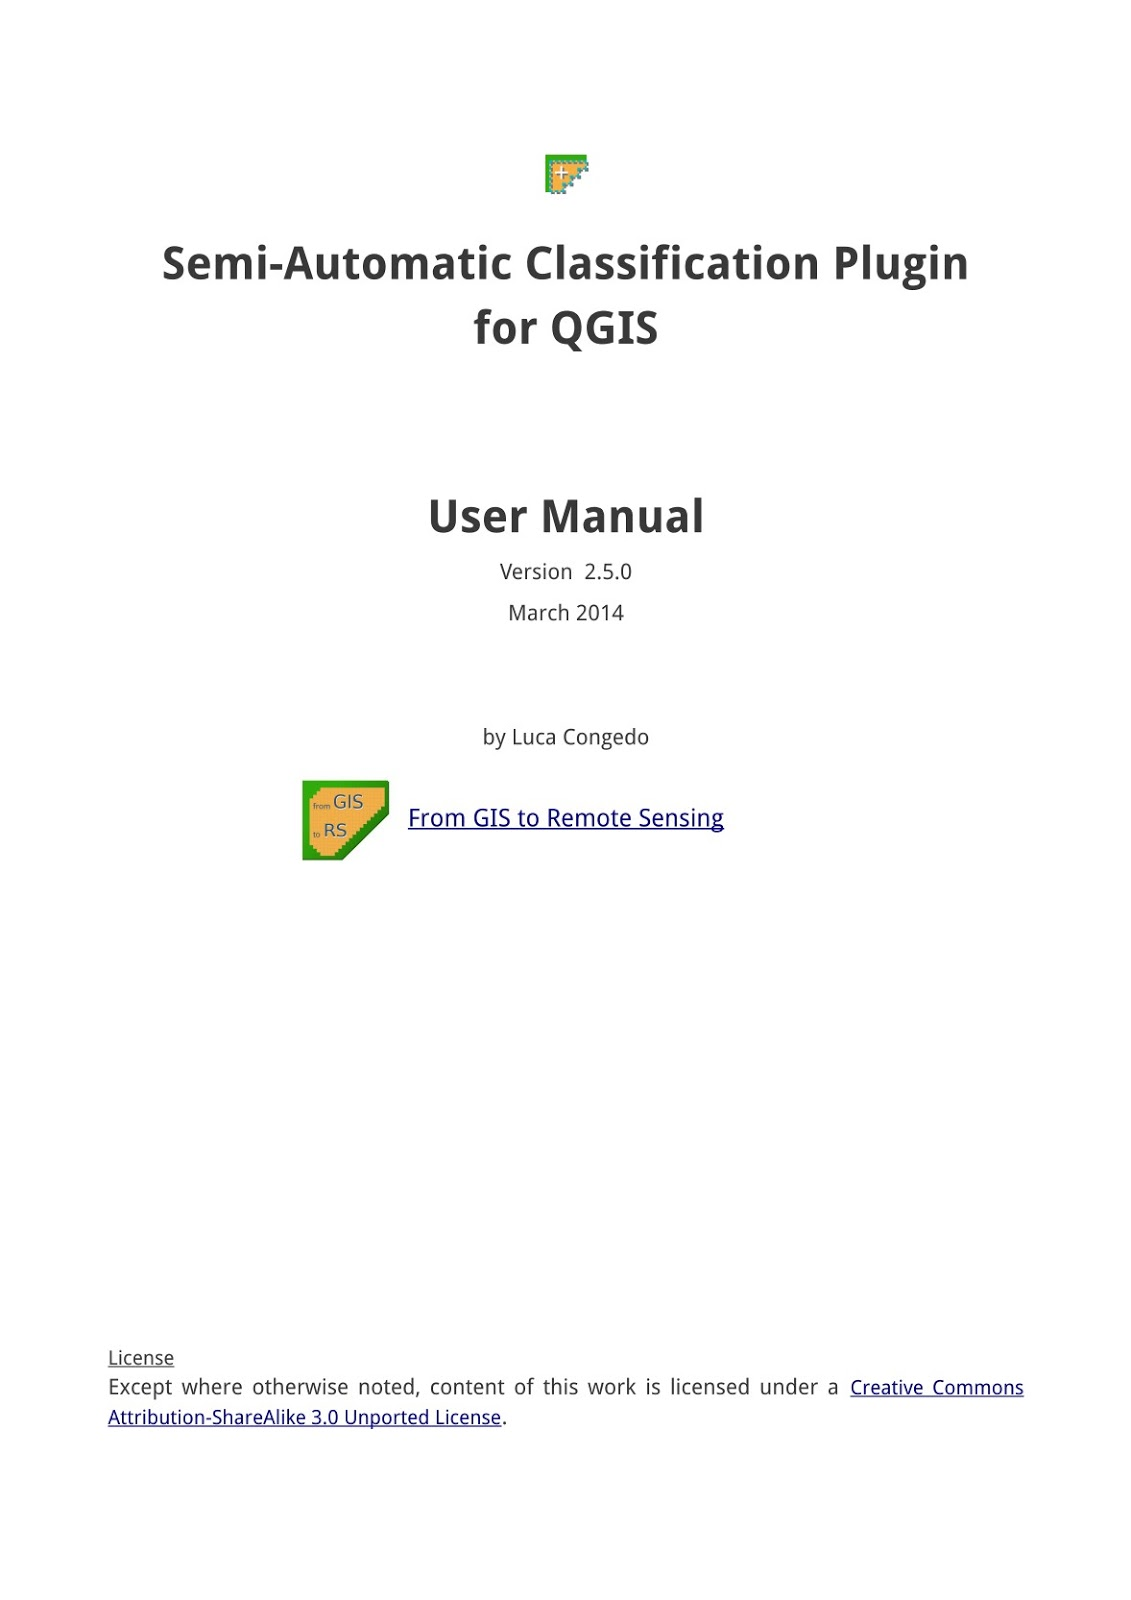 From GIS to Remote Sensing: Published the User Manual of the Semi